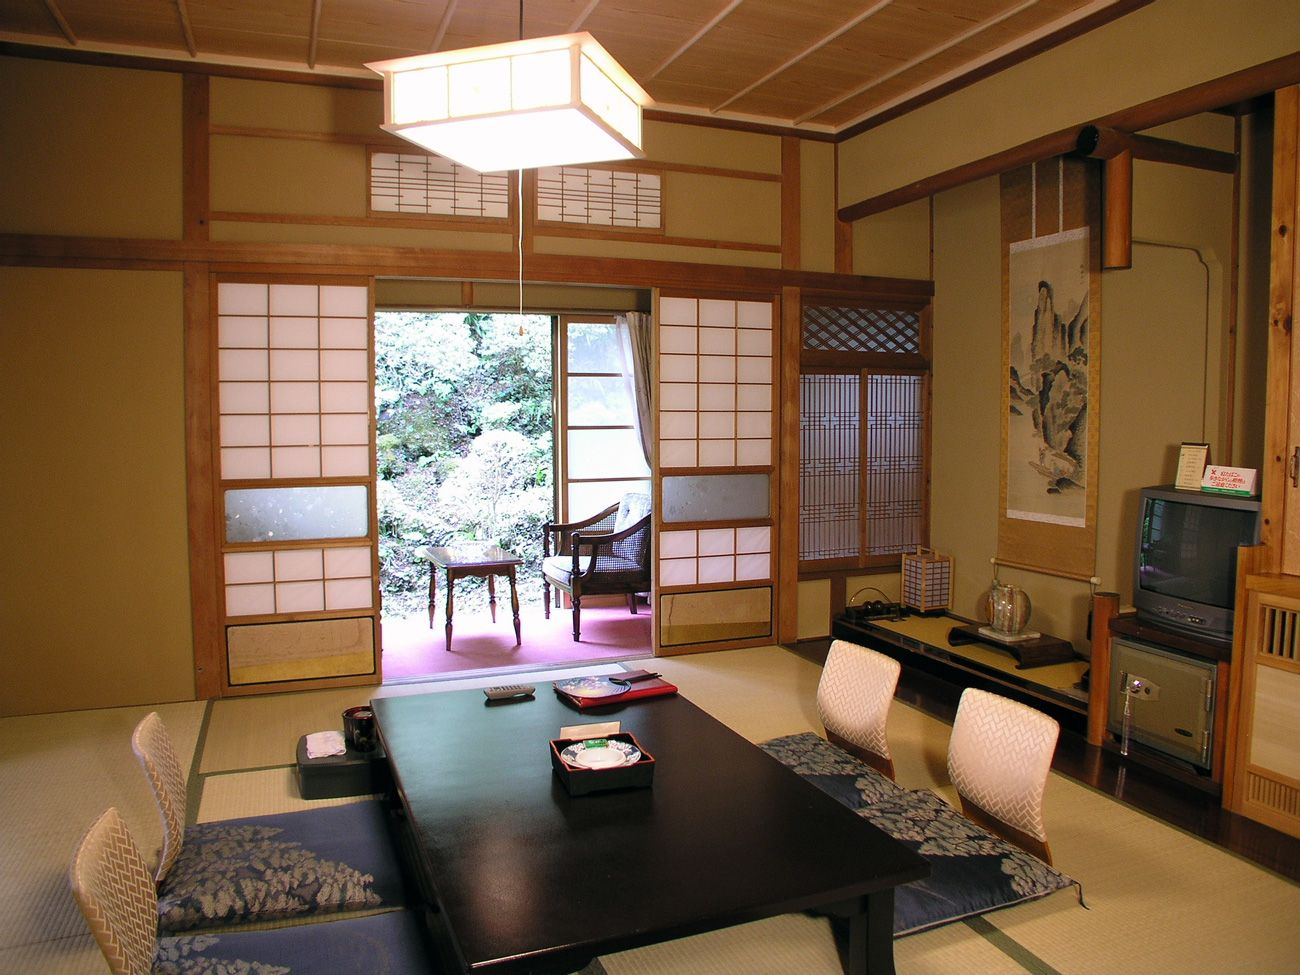 Japanese Room Design Ideas Part - 32: Calming-Japanese-Dining-Room-Design-Ideas-That-Will-